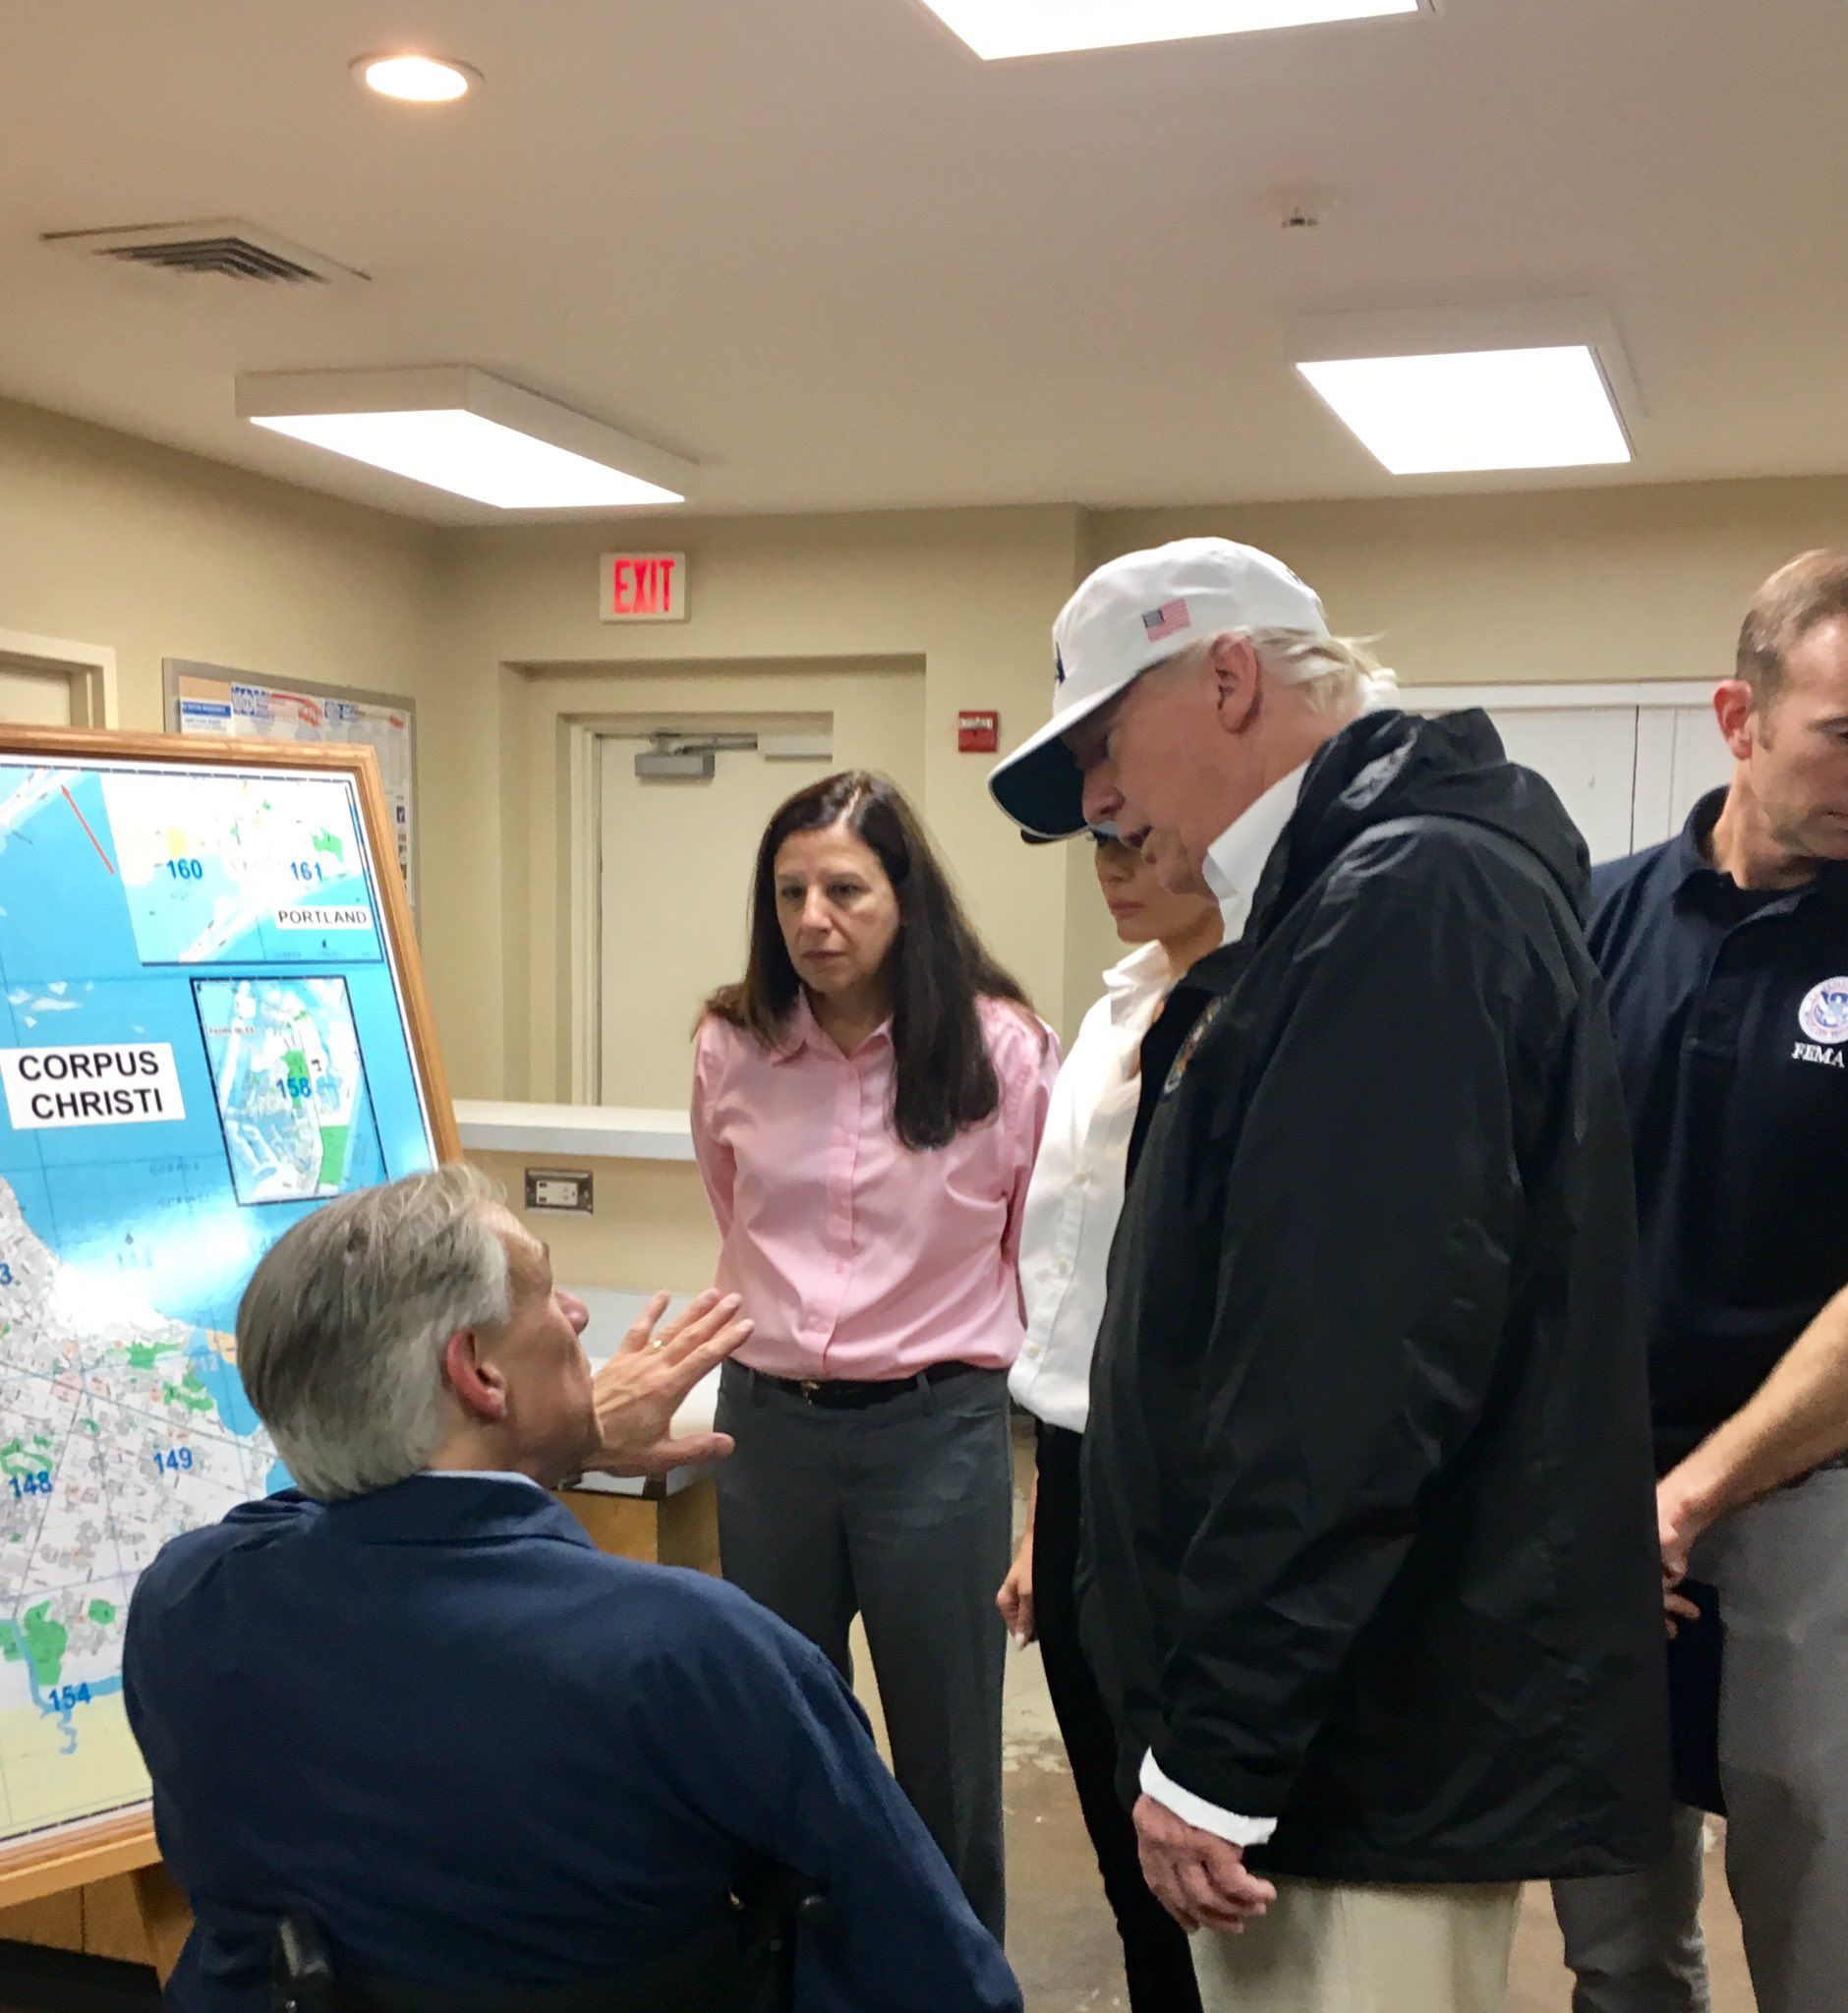 .@GovAbbott briefs @POTUS and @FLOTUS on areas most affected by #HurricaneHarvy upon arrival at Fire Station 1. https://t.co/nqbFURB0dH